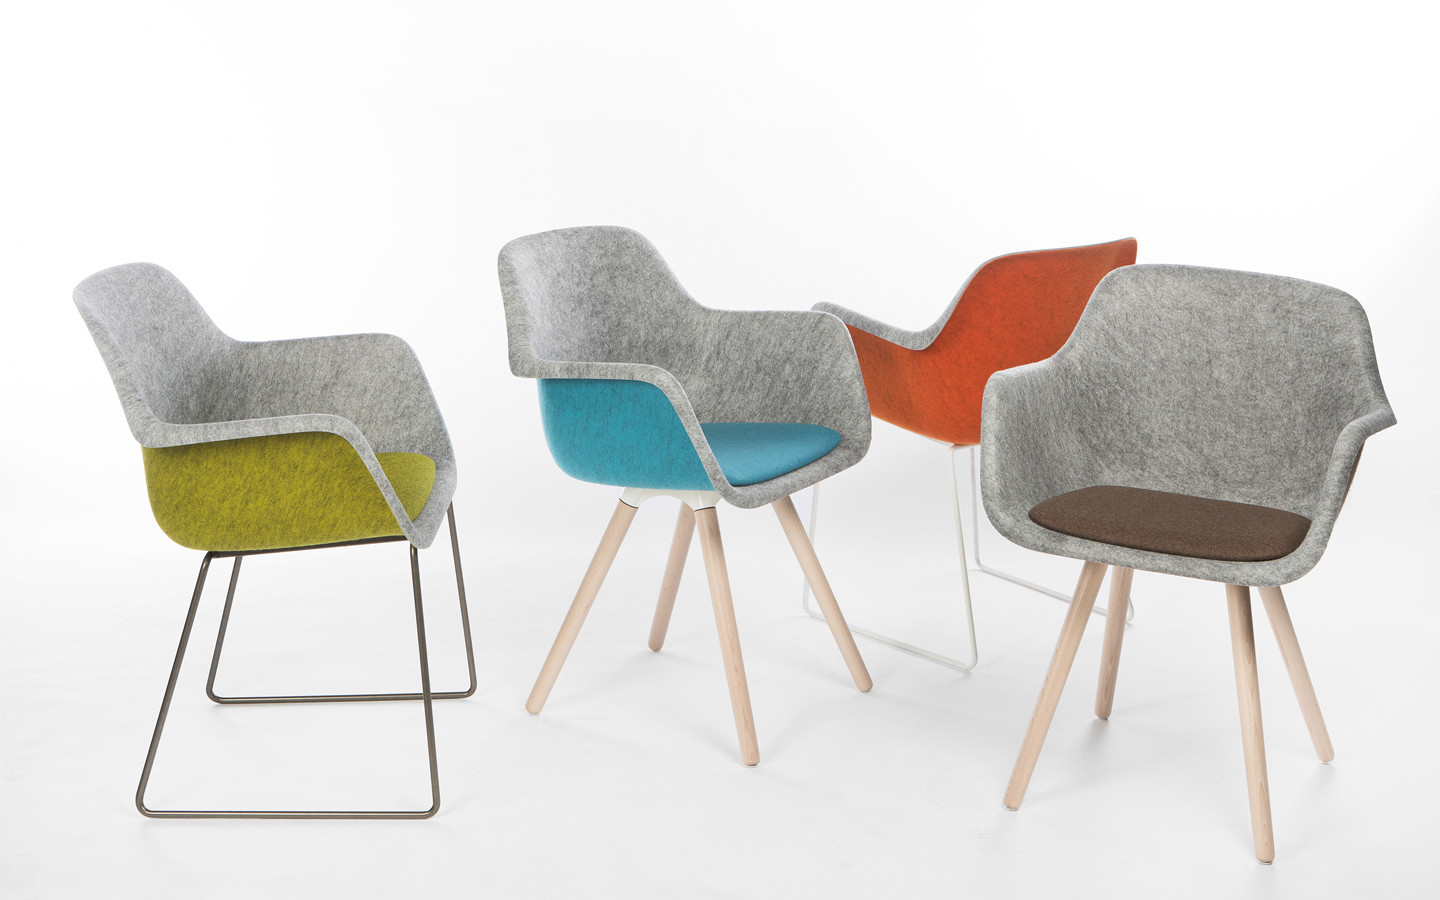 Felt, a chair made from PET bottles